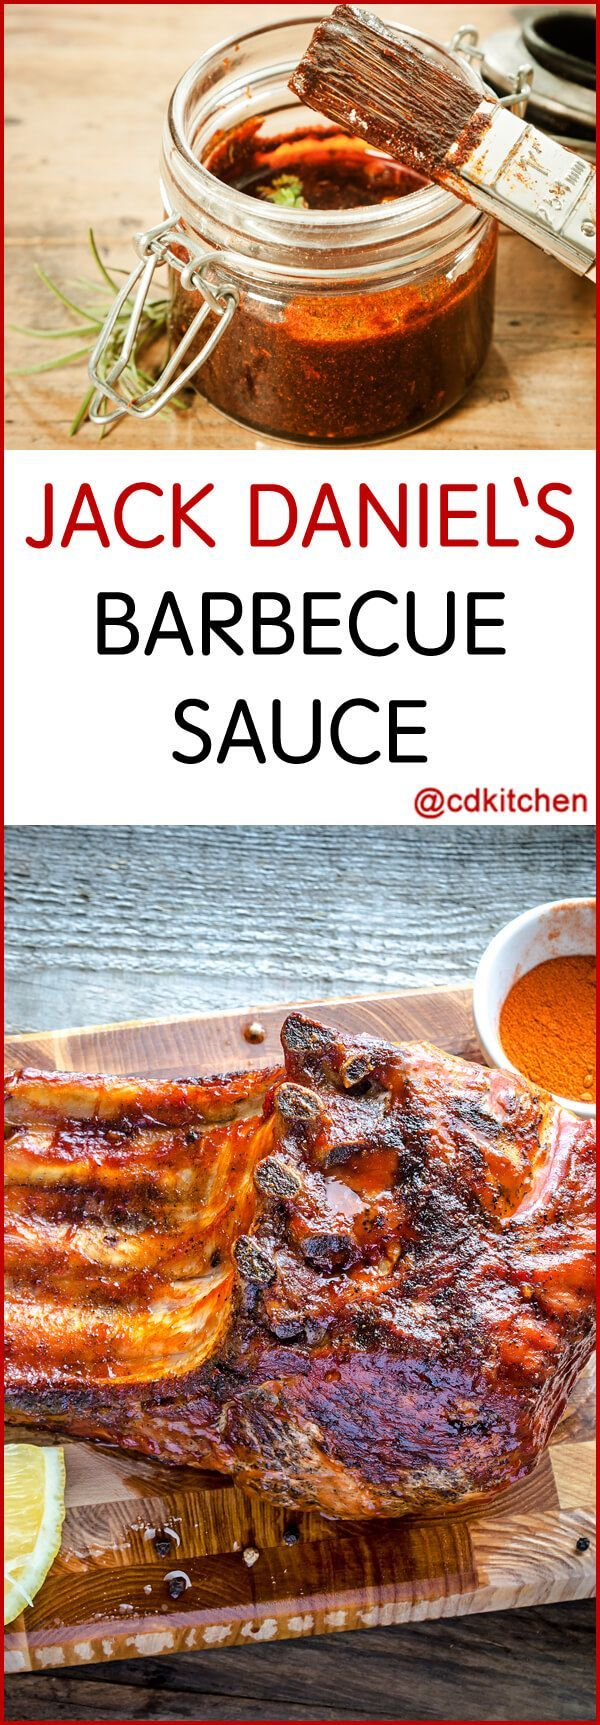 Jack Daniel's Barbecue Sauce - A splash of Jack steps up your bbq sauce game. The rich bourbon flavor works well with chicken, beef, or pork. Heck, you can use this anywhere you use barbecue sauce.| CDKitchen.com